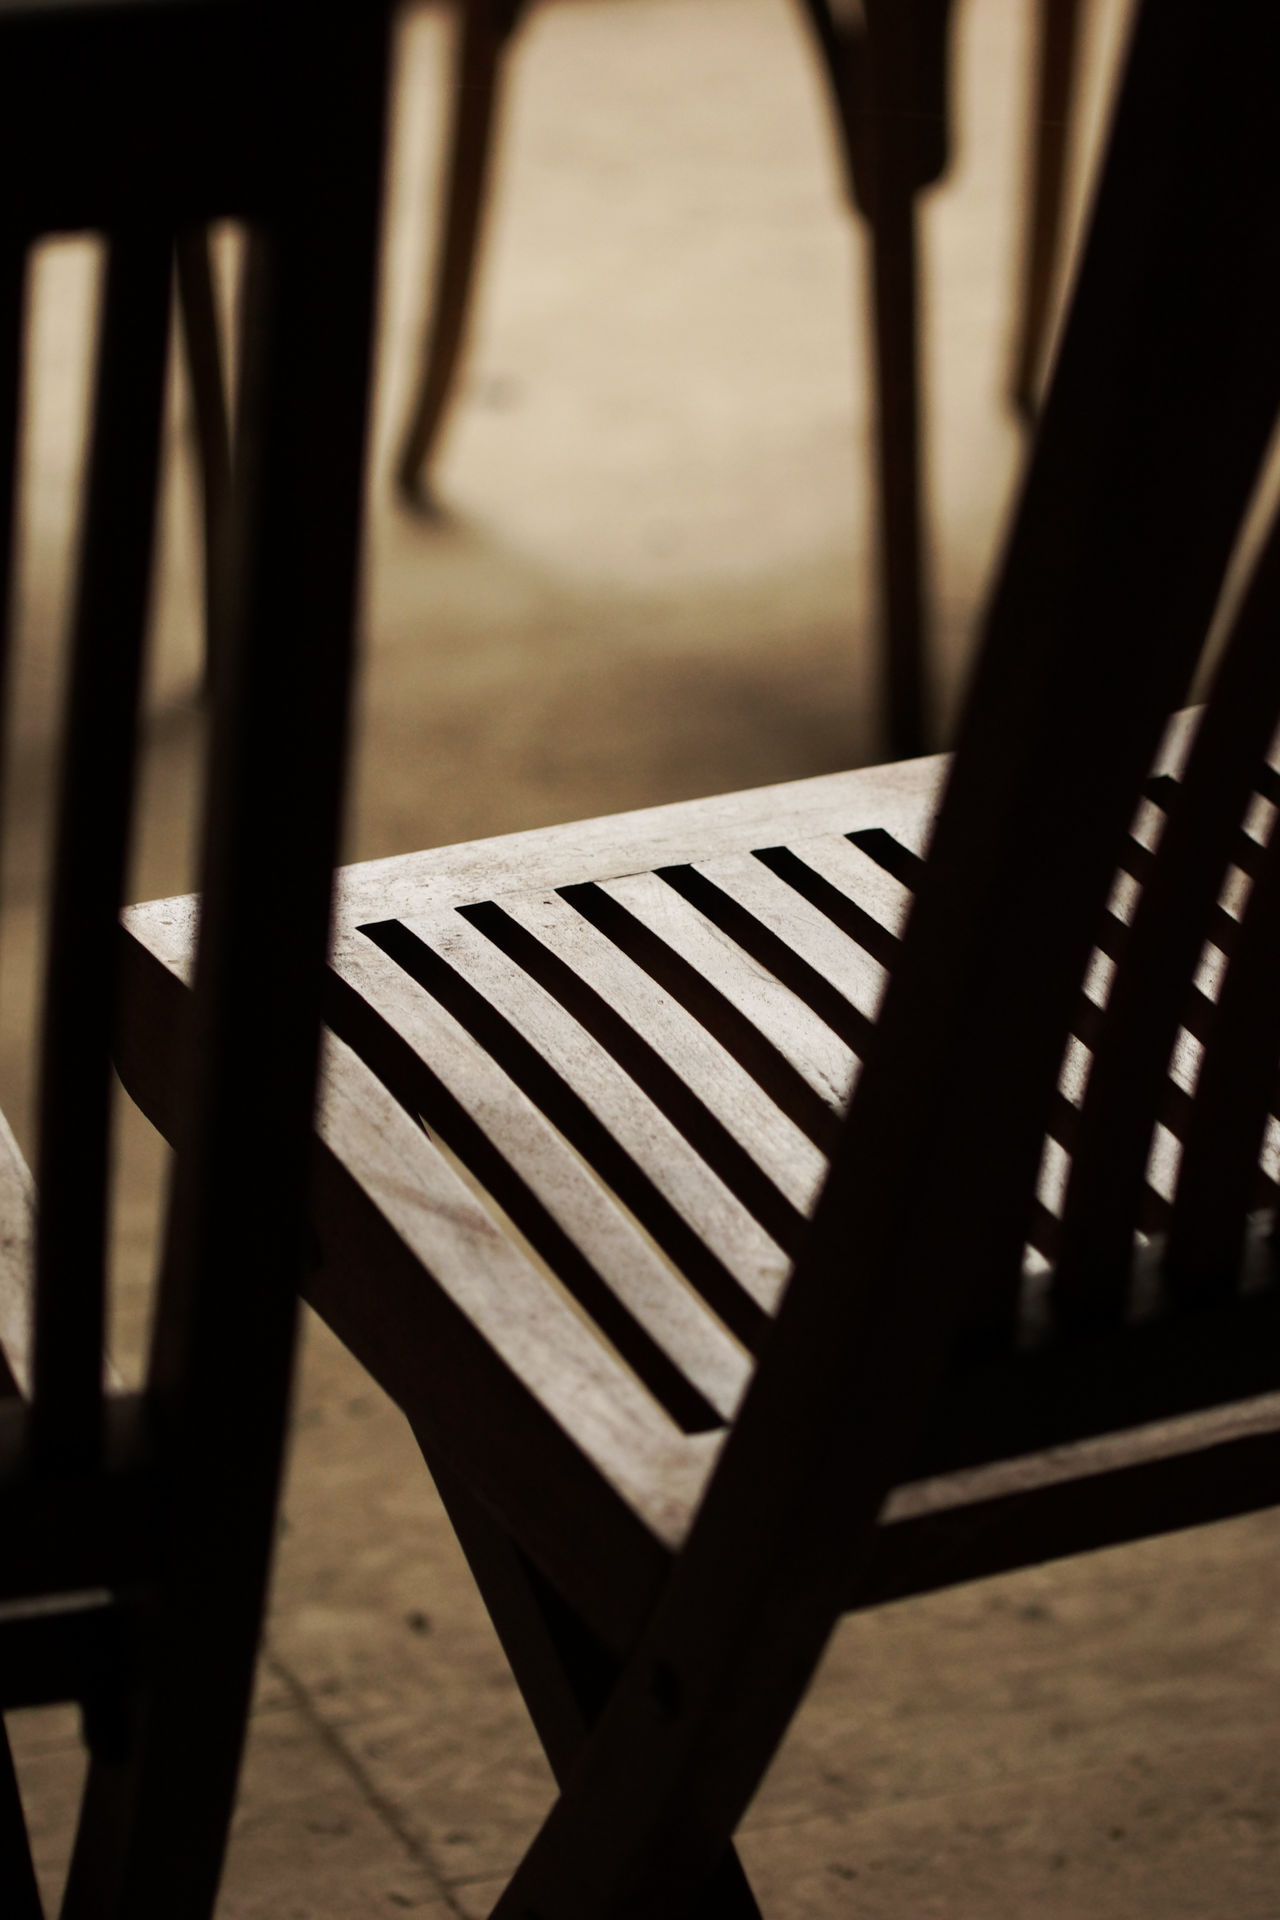 Just Chairs Abstract Brown Chair Close-up Comfort Comfortable Contrast Day Detail Folding Chair Furniture Indoors  Interior Interior Design Interior Views Invitation Inviting Monochrome No People Pattern Reflection Seat Selective Focus Shadow Sunlight